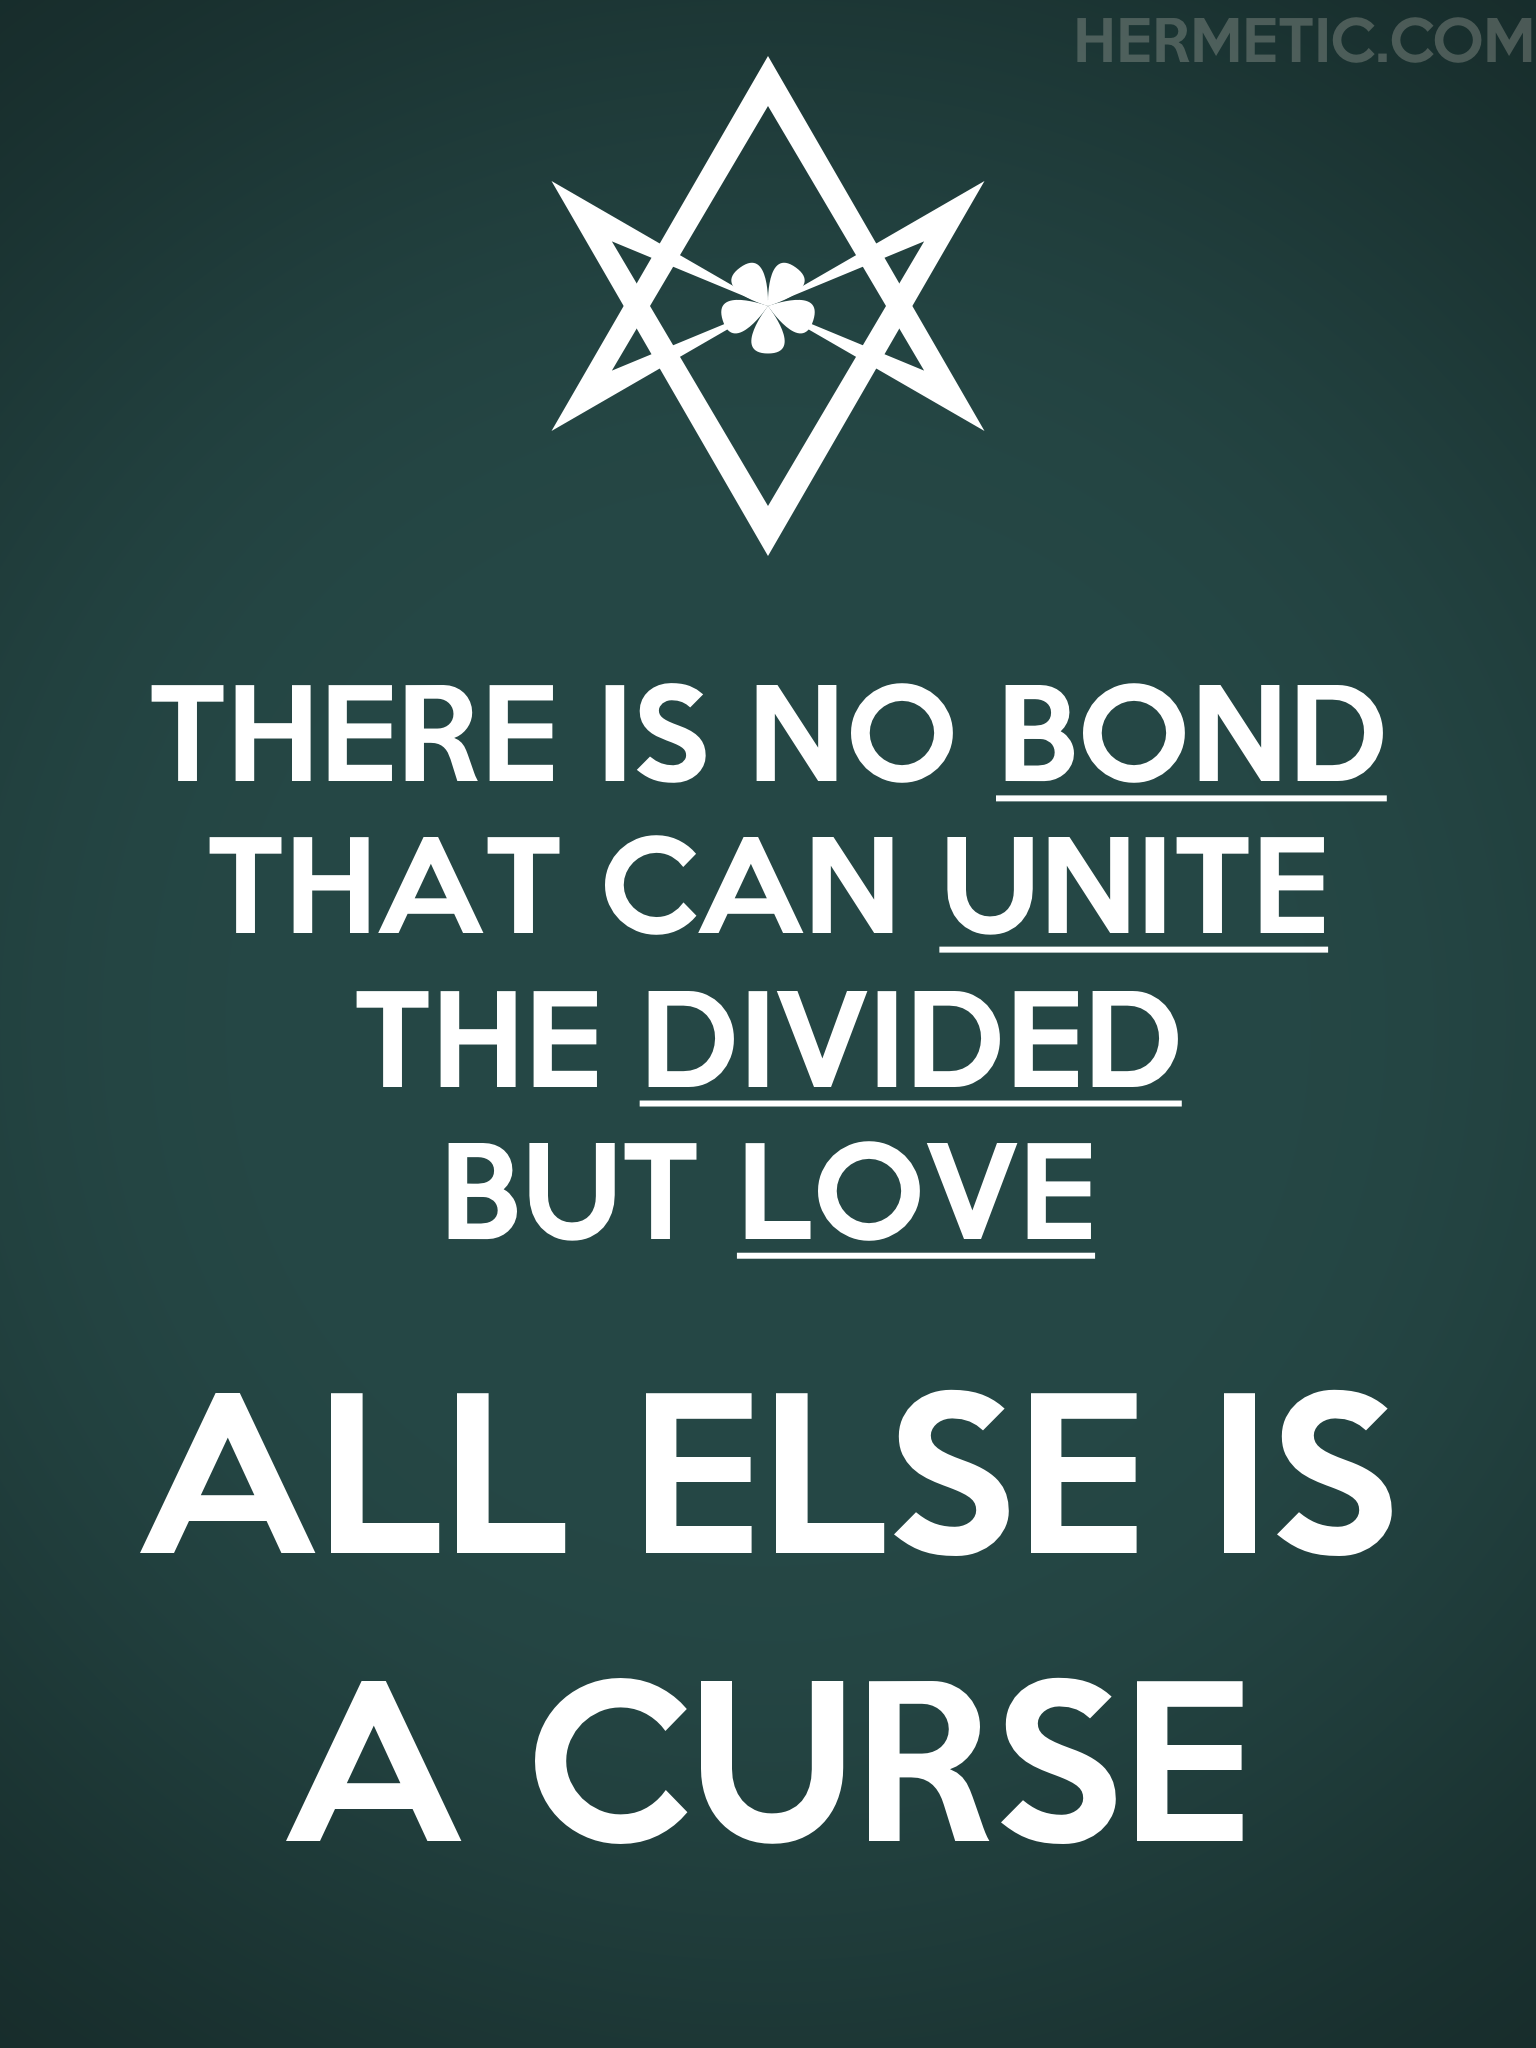 Unicursal UNITE THE DIVIDED Propaganda Poster from Hermetic Library Office of the Ministry of Information